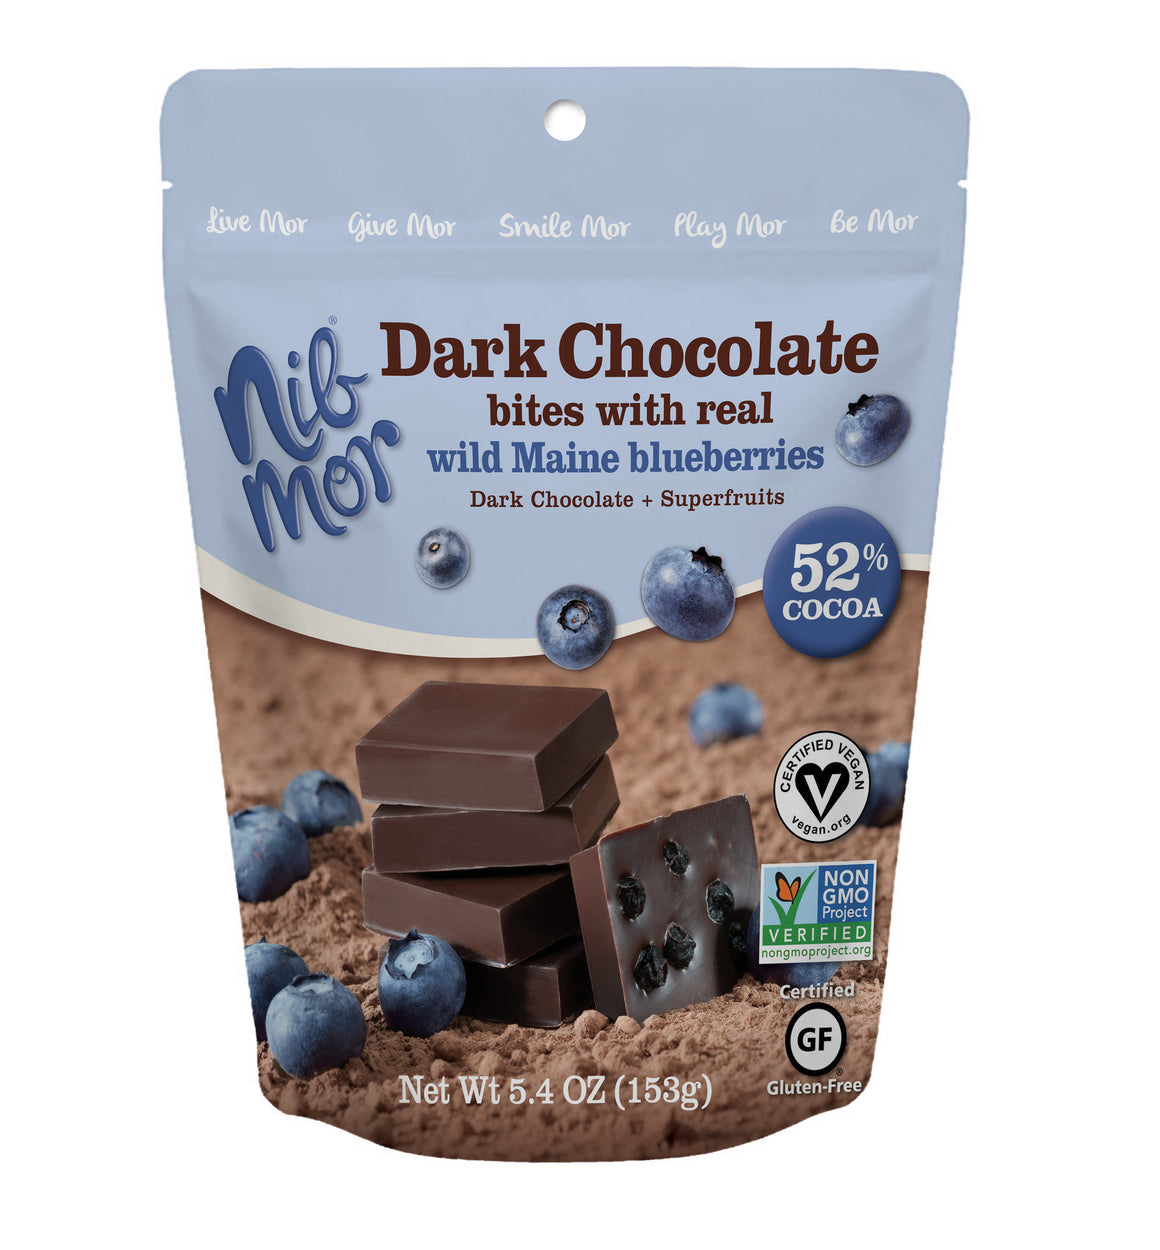 Dark Chocolate Bites with Real Wild Maine Blueberries 5.4oz Bag - Pack 6